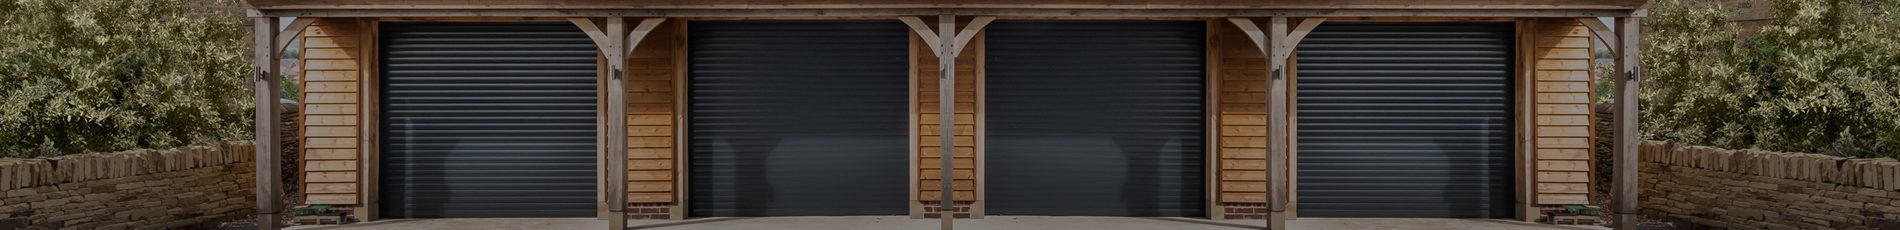 Roller Garage Doors Northallerton